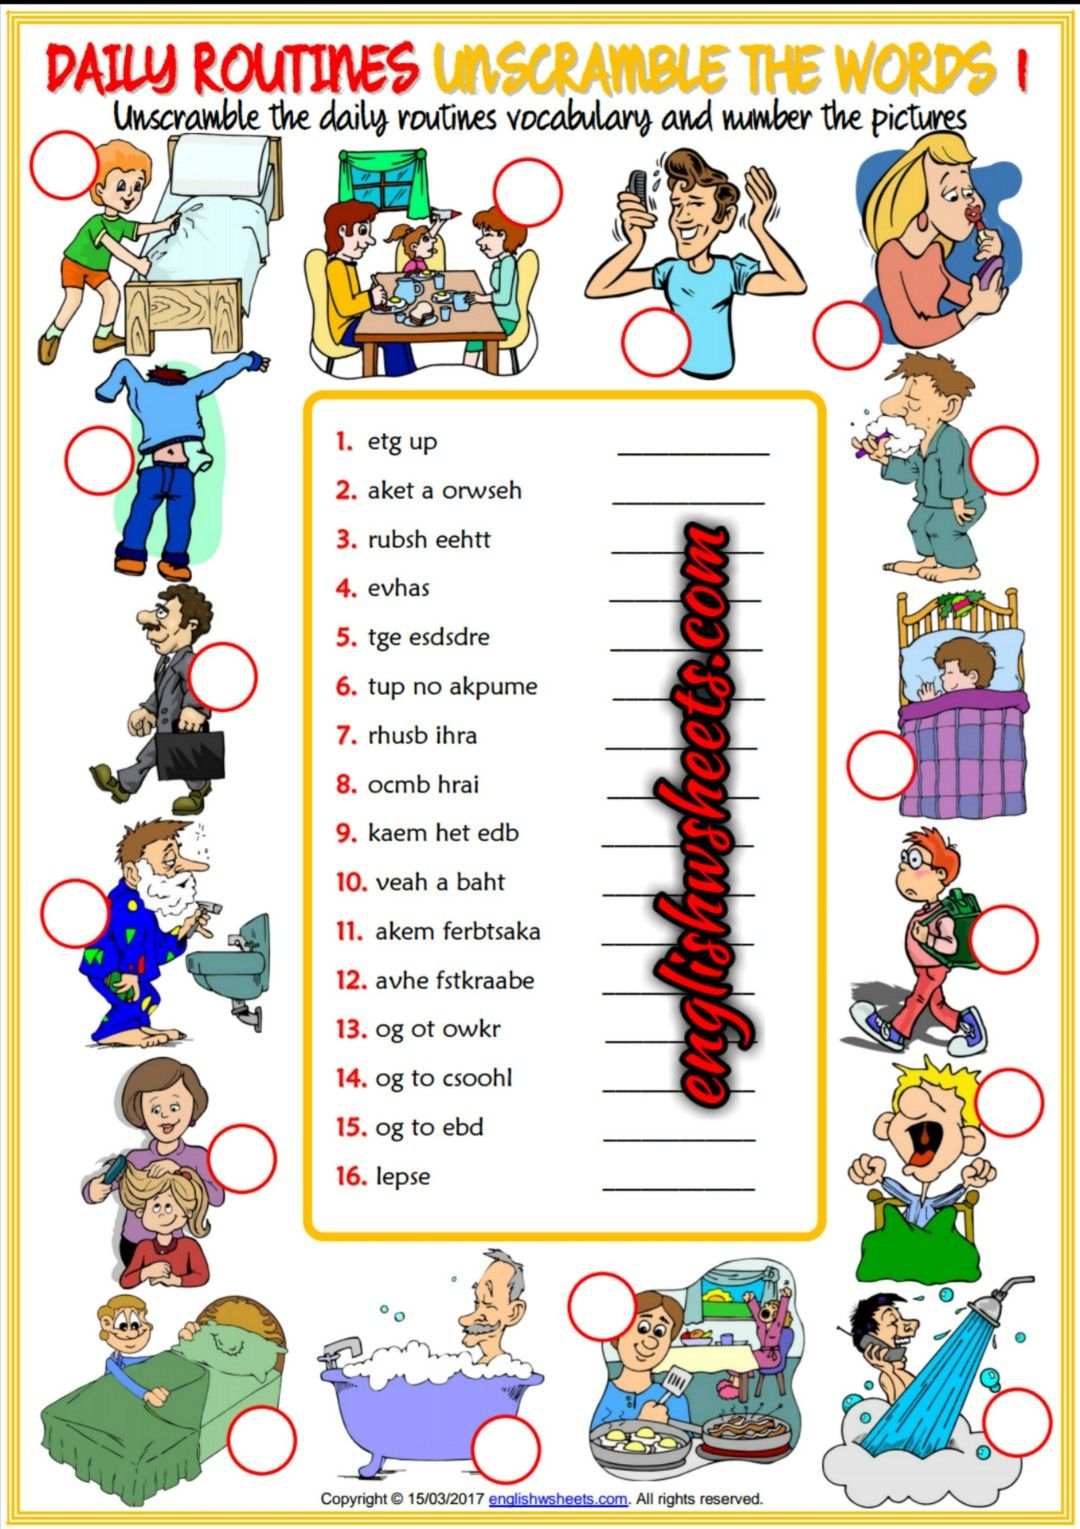 Daily Routines Esl Printable Unscramble the Words Worksheets For ...